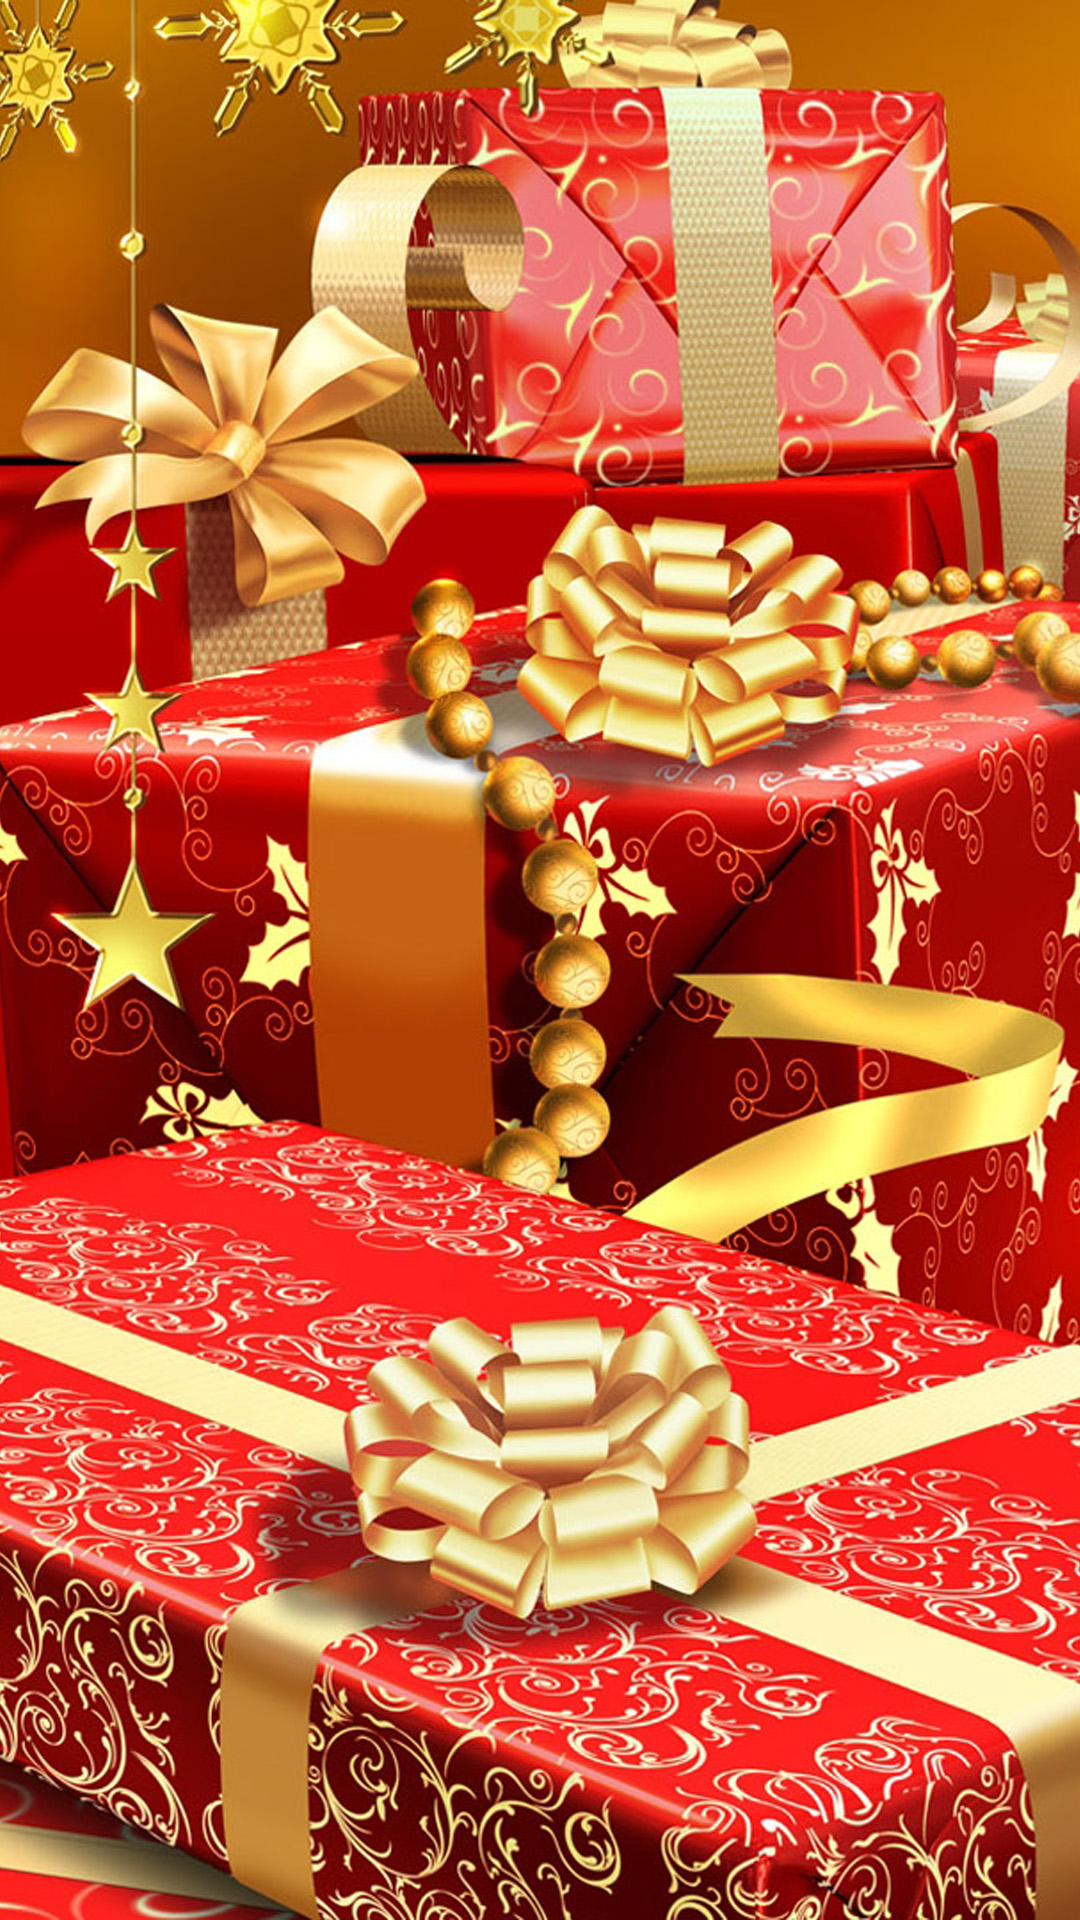 Christmas Presents Wallpapers For Iphone